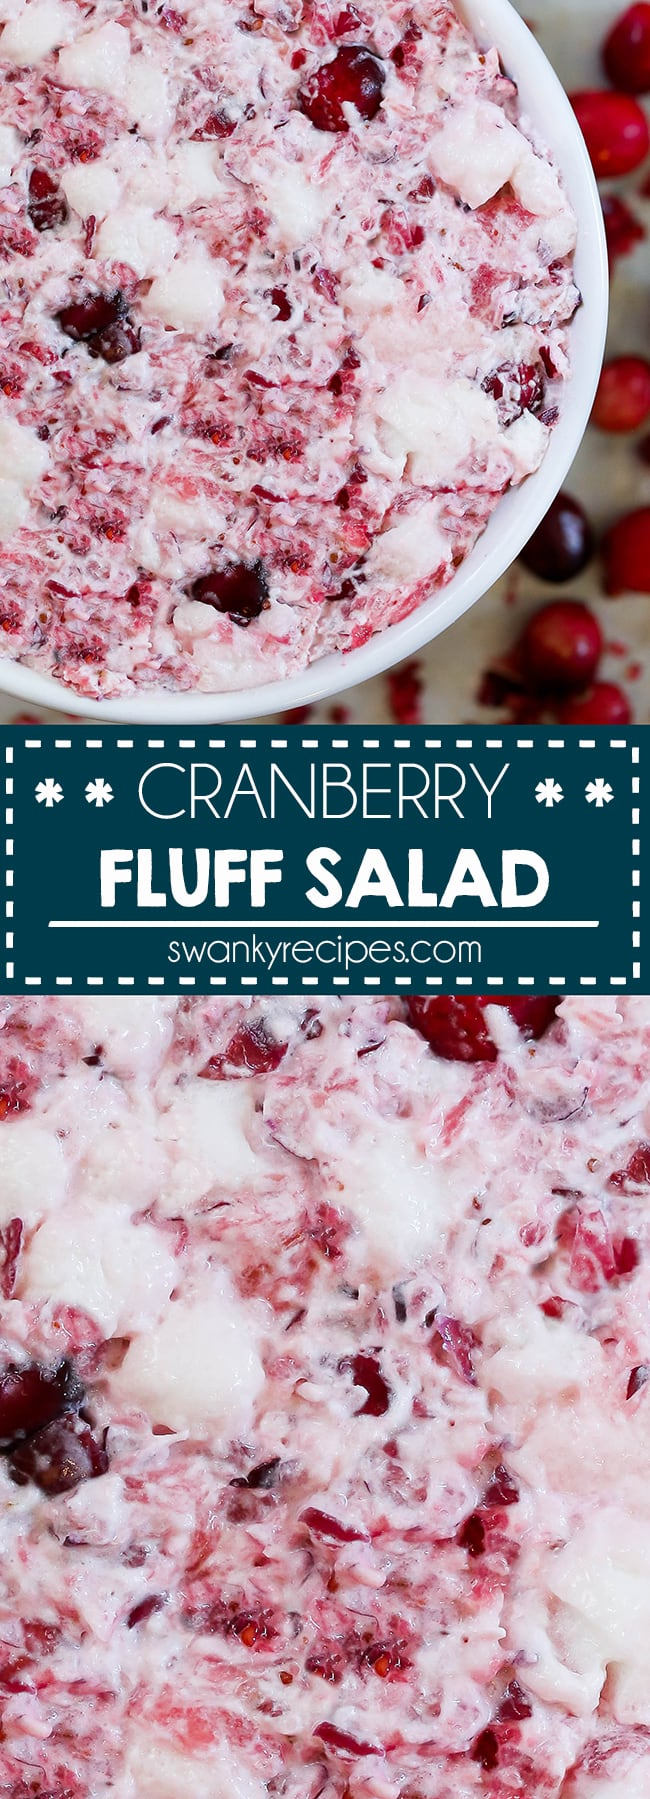 Cranberry Fluff Salad - Creamy cranberries with marshmallows, whipped cream, and crushed pineapple. A vintage Thanksgiving and Christmas recipe served as a side dish or dessert salad.